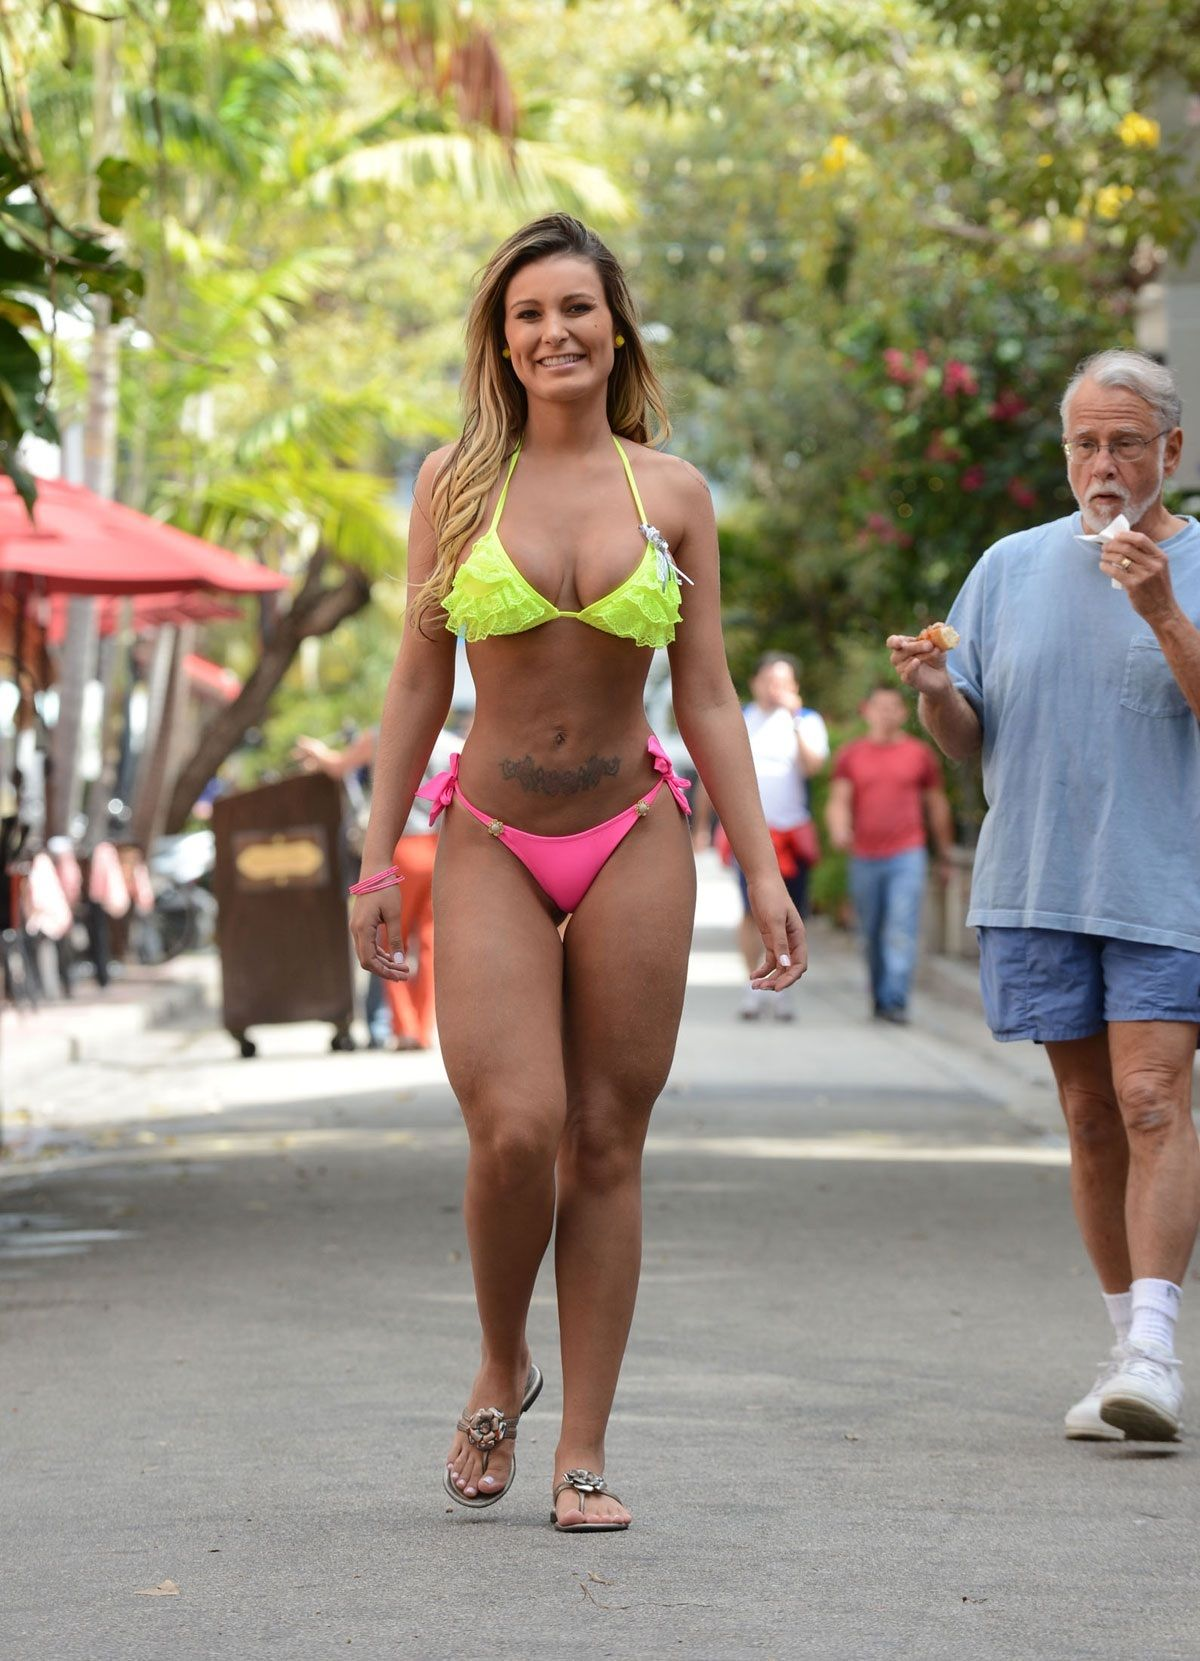 Pictures Andressa Urach nudes (69 photo), Tits, Cleavage, Feet, swimsuit 2017